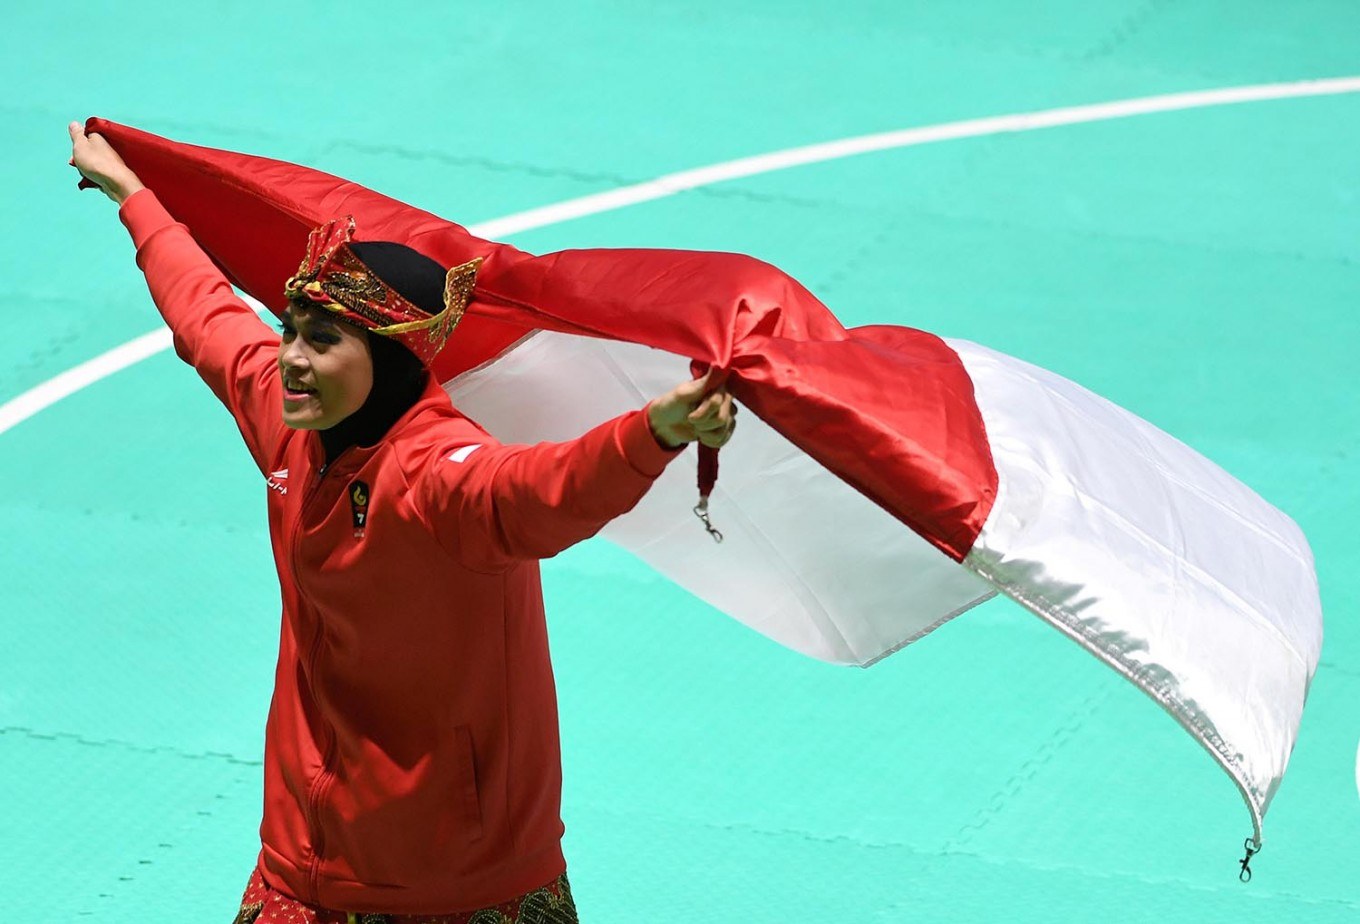 Commentary: Don't rest on non-Olympic sports laurels, Indonesia